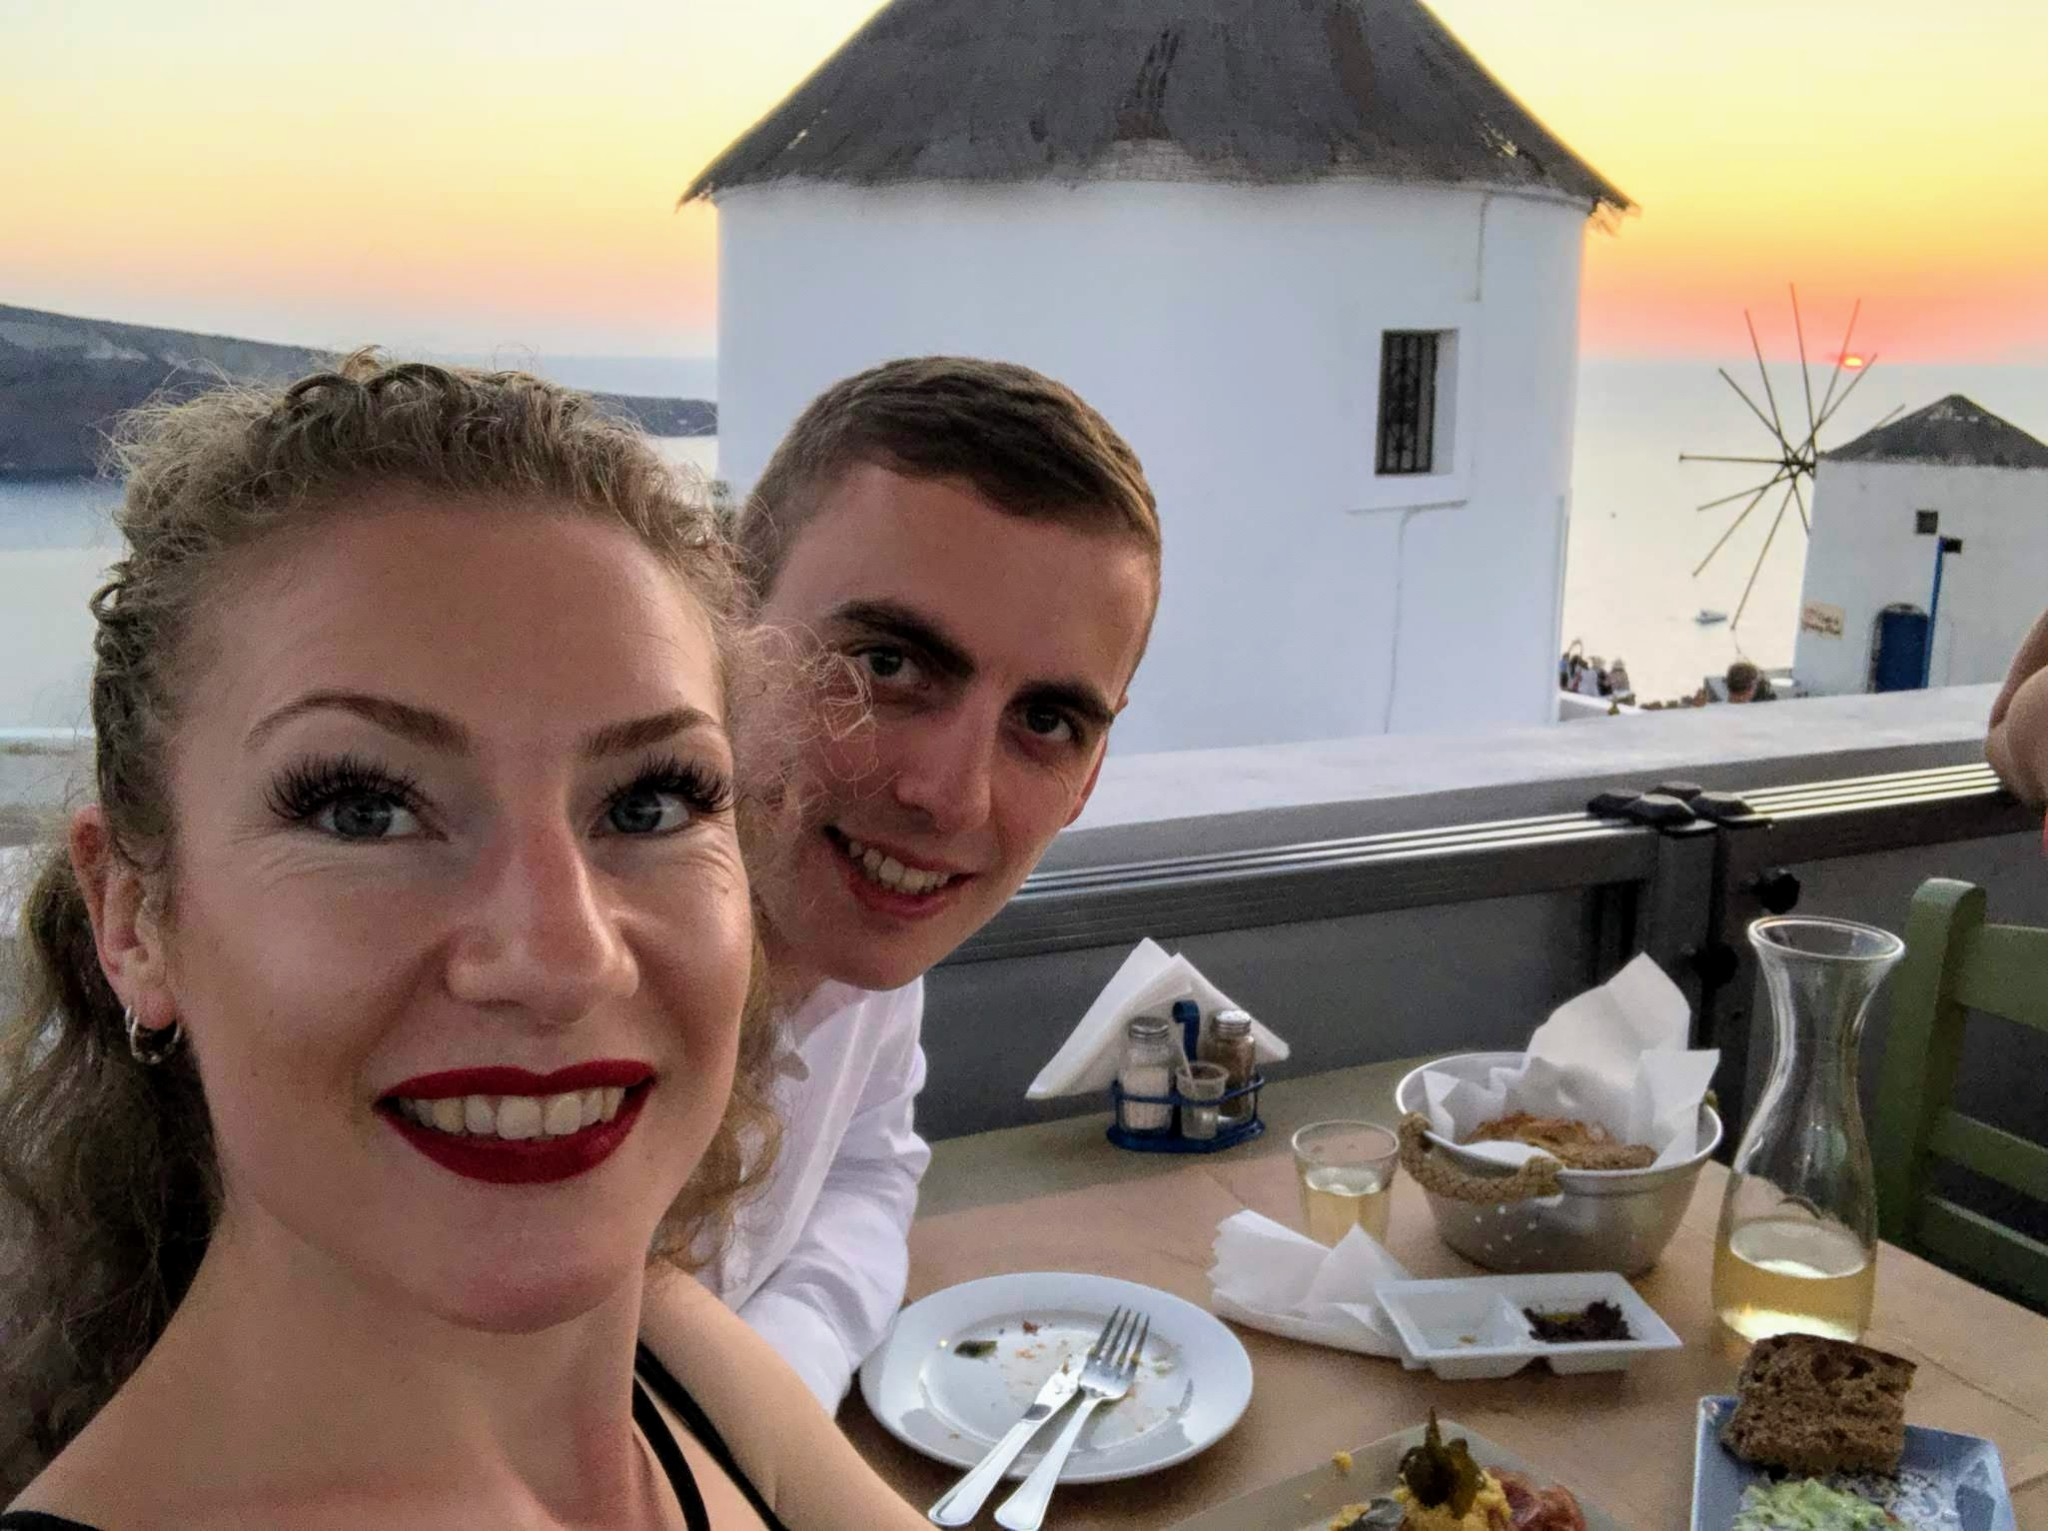 Elinikon Restaurant View - Santorini, Greece - Honeymoon Part 2 - Oia in Santorini is beautiful with its pretty caldera view, sunsets, windmills and quaint pedestrian streets, we headed here for our Honeymoon Part 2! - Greek Island, Europe - Veritru